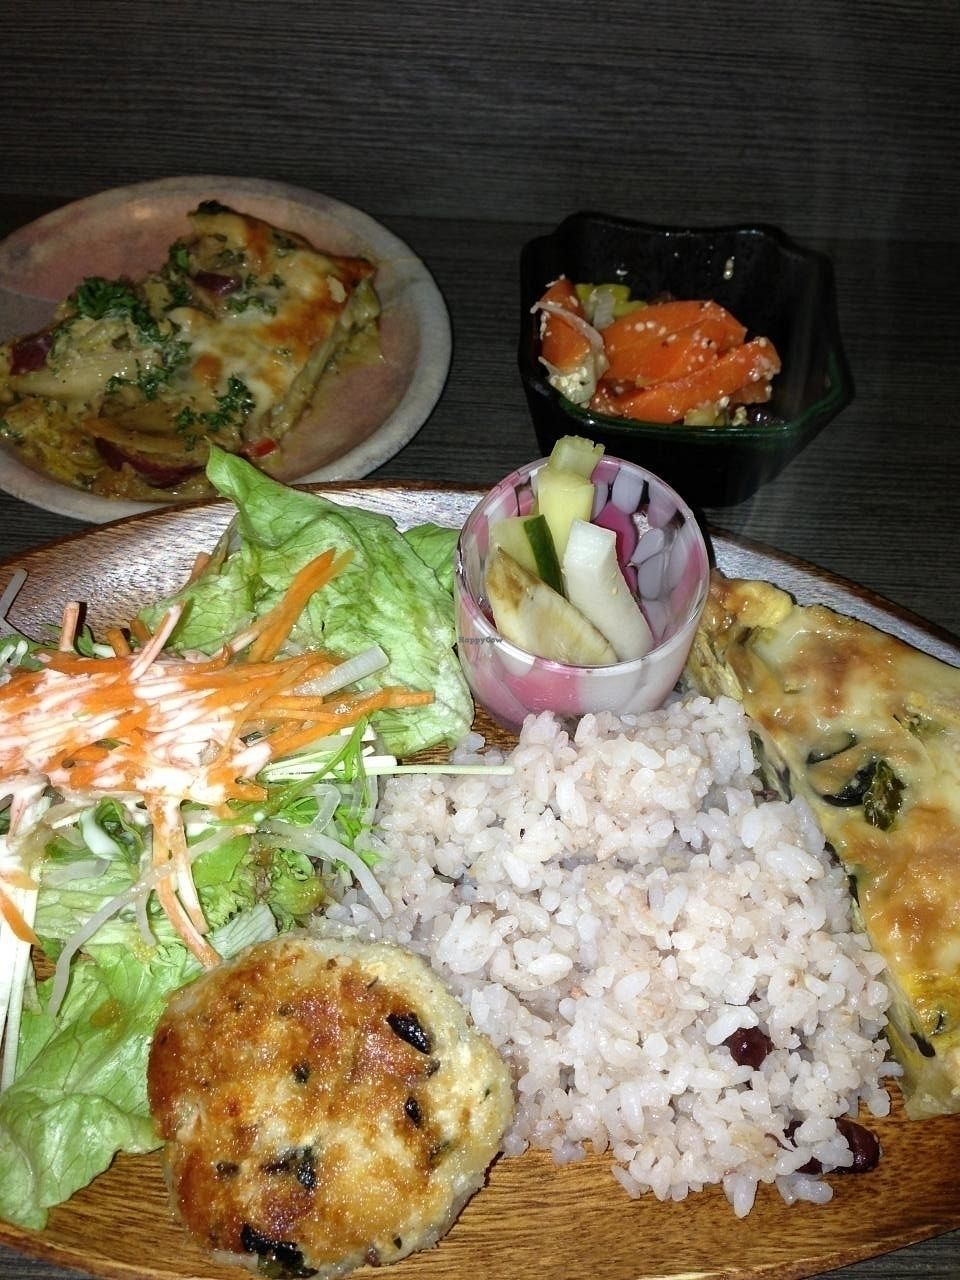 """Photo of Base Island Kitchen  by <a href=""""/members/profile/Vegeiko"""">Vegeiko</a> <br/>Lunch set <br/> January 24, 2014  - <a href='/contact/abuse/image/44611/171898'>Report</a>"""